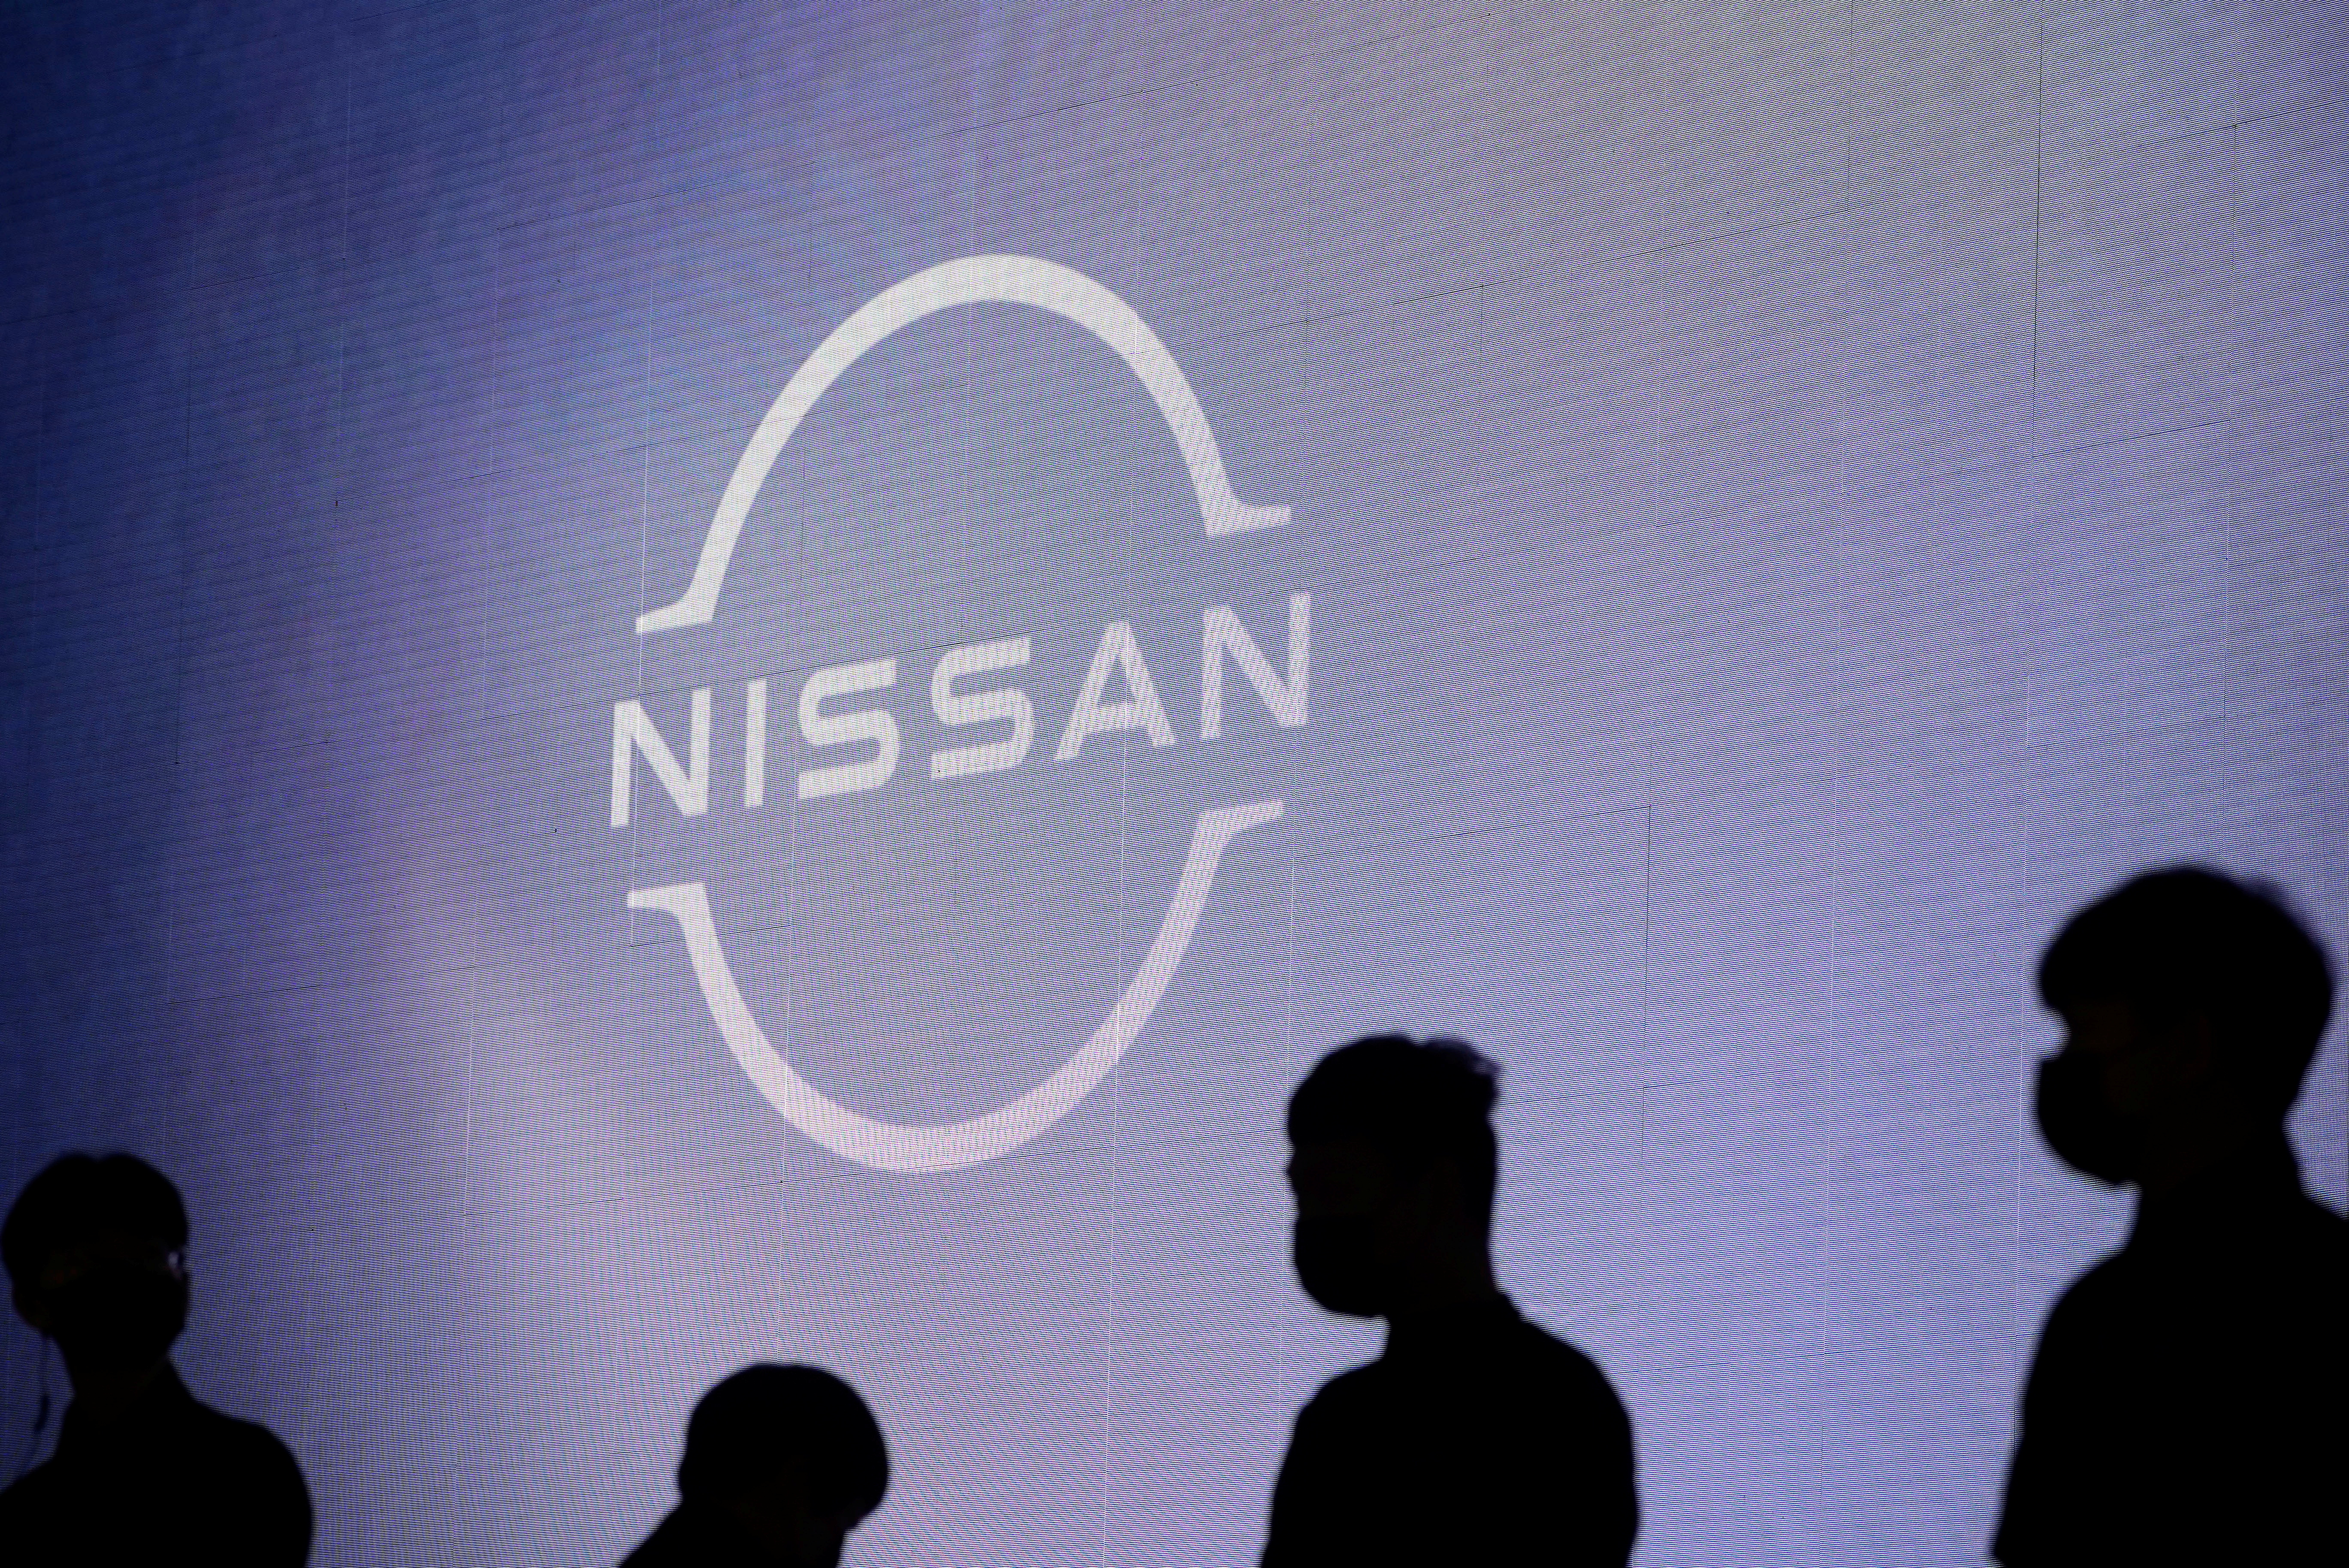 People stand near the Nissan logo during a media day for the Auto Shanghai show in Shanghai, China April 20, 2021. REUTERS/Aly Song